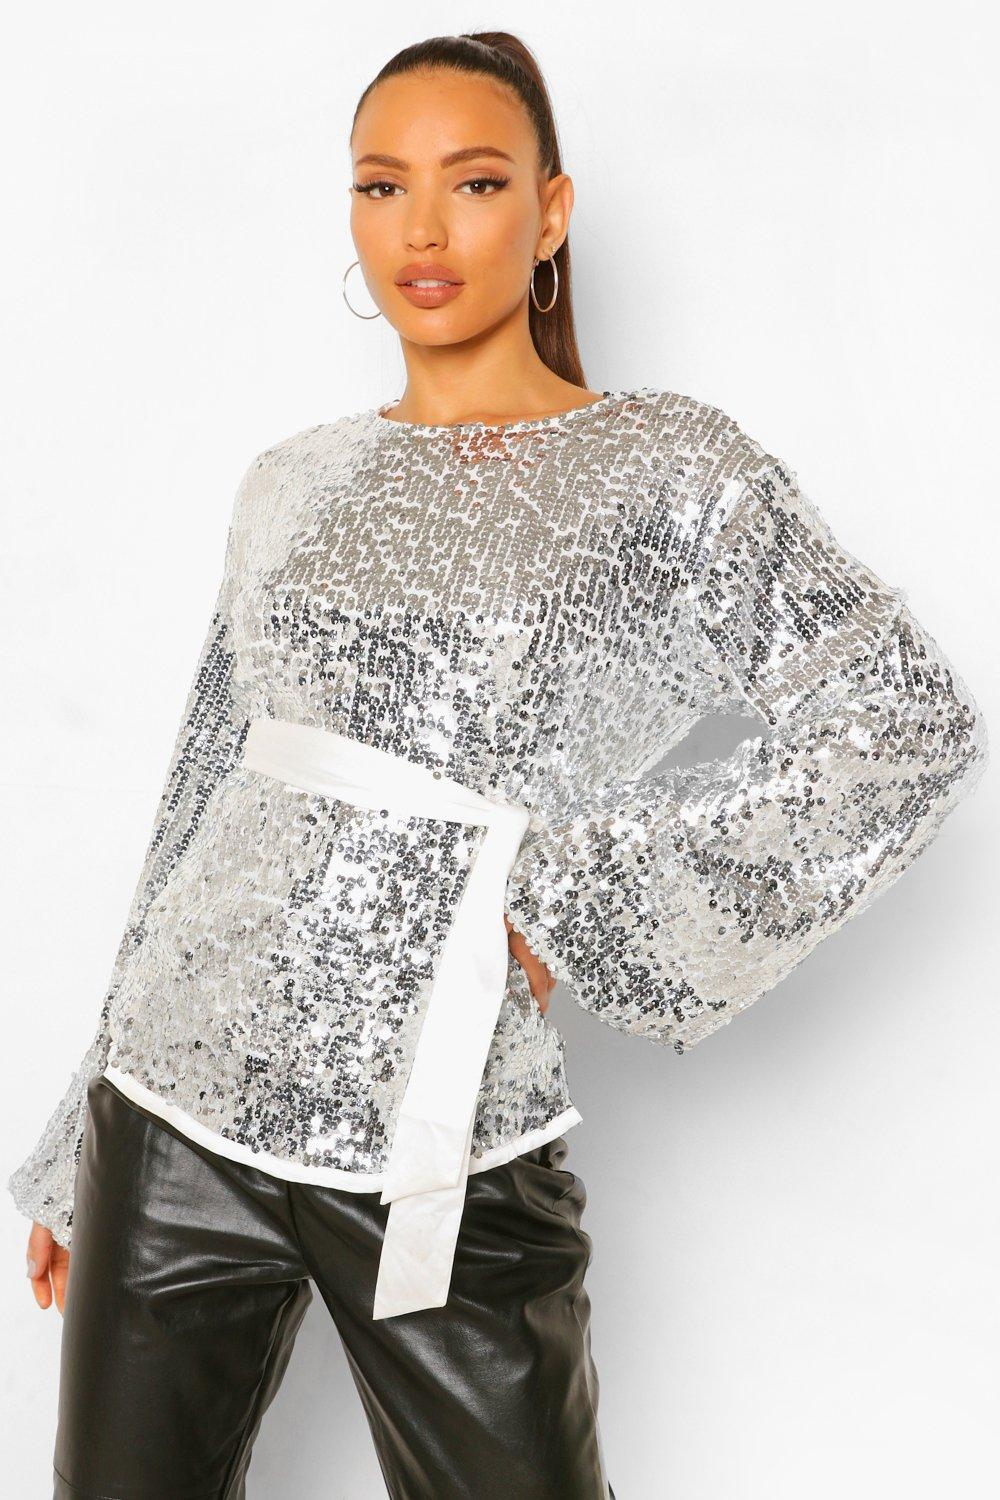 70s Clothes | Hippie Clothes & Outfits Womens Tall Sequin Balloon Sleeve Belted Top - Grey - 4 $14.00 AT vintagedancer.com